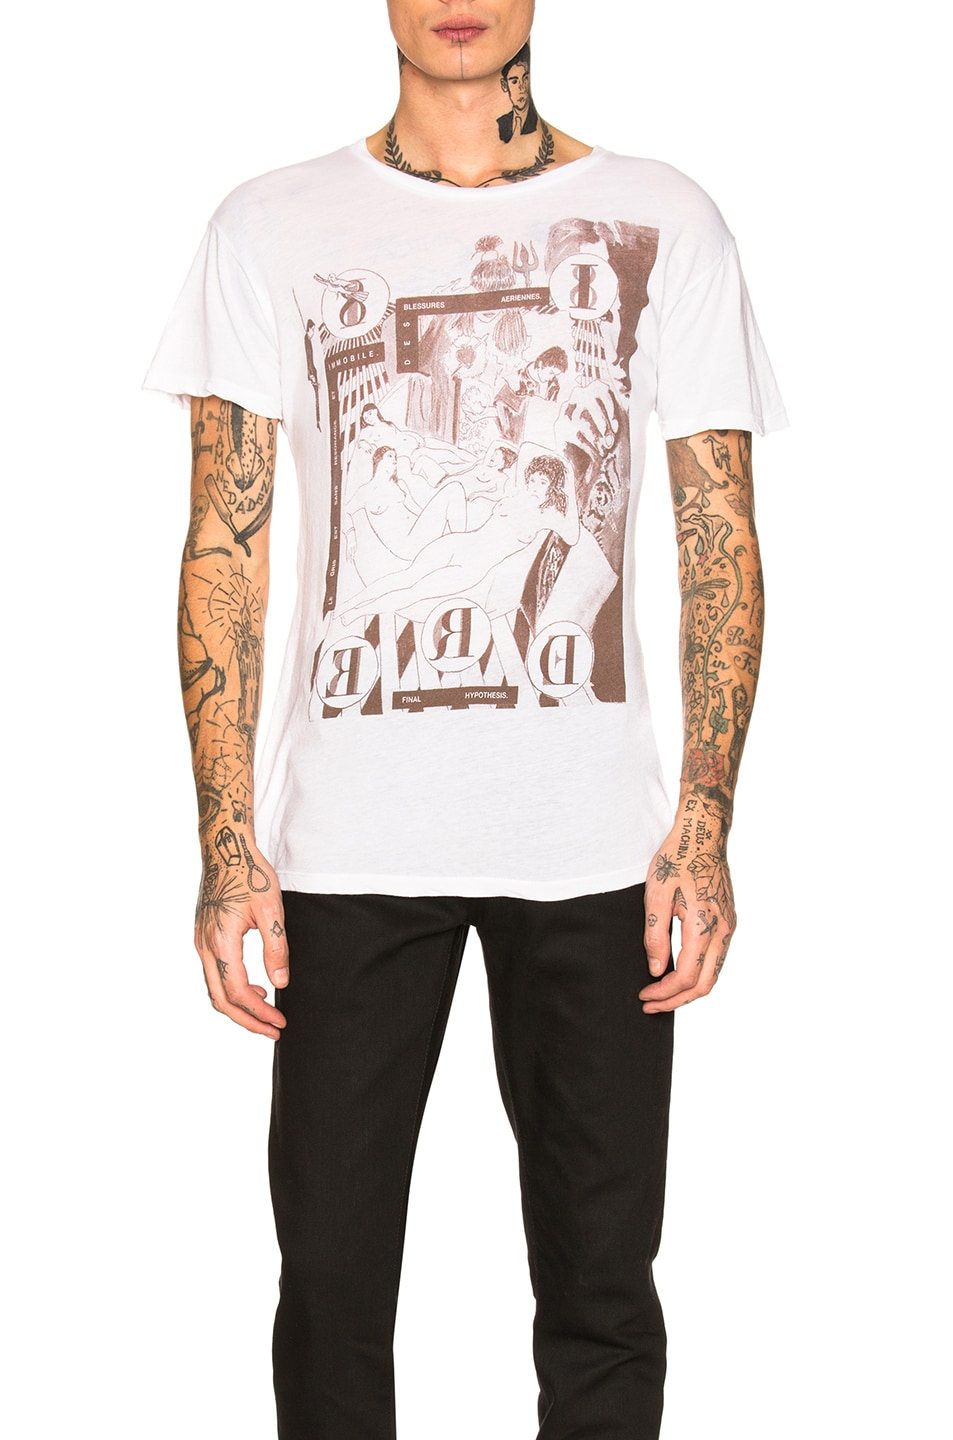 Image 1 of Enfants Riches Deprimes Bath House Orgy Tee in White & Brown